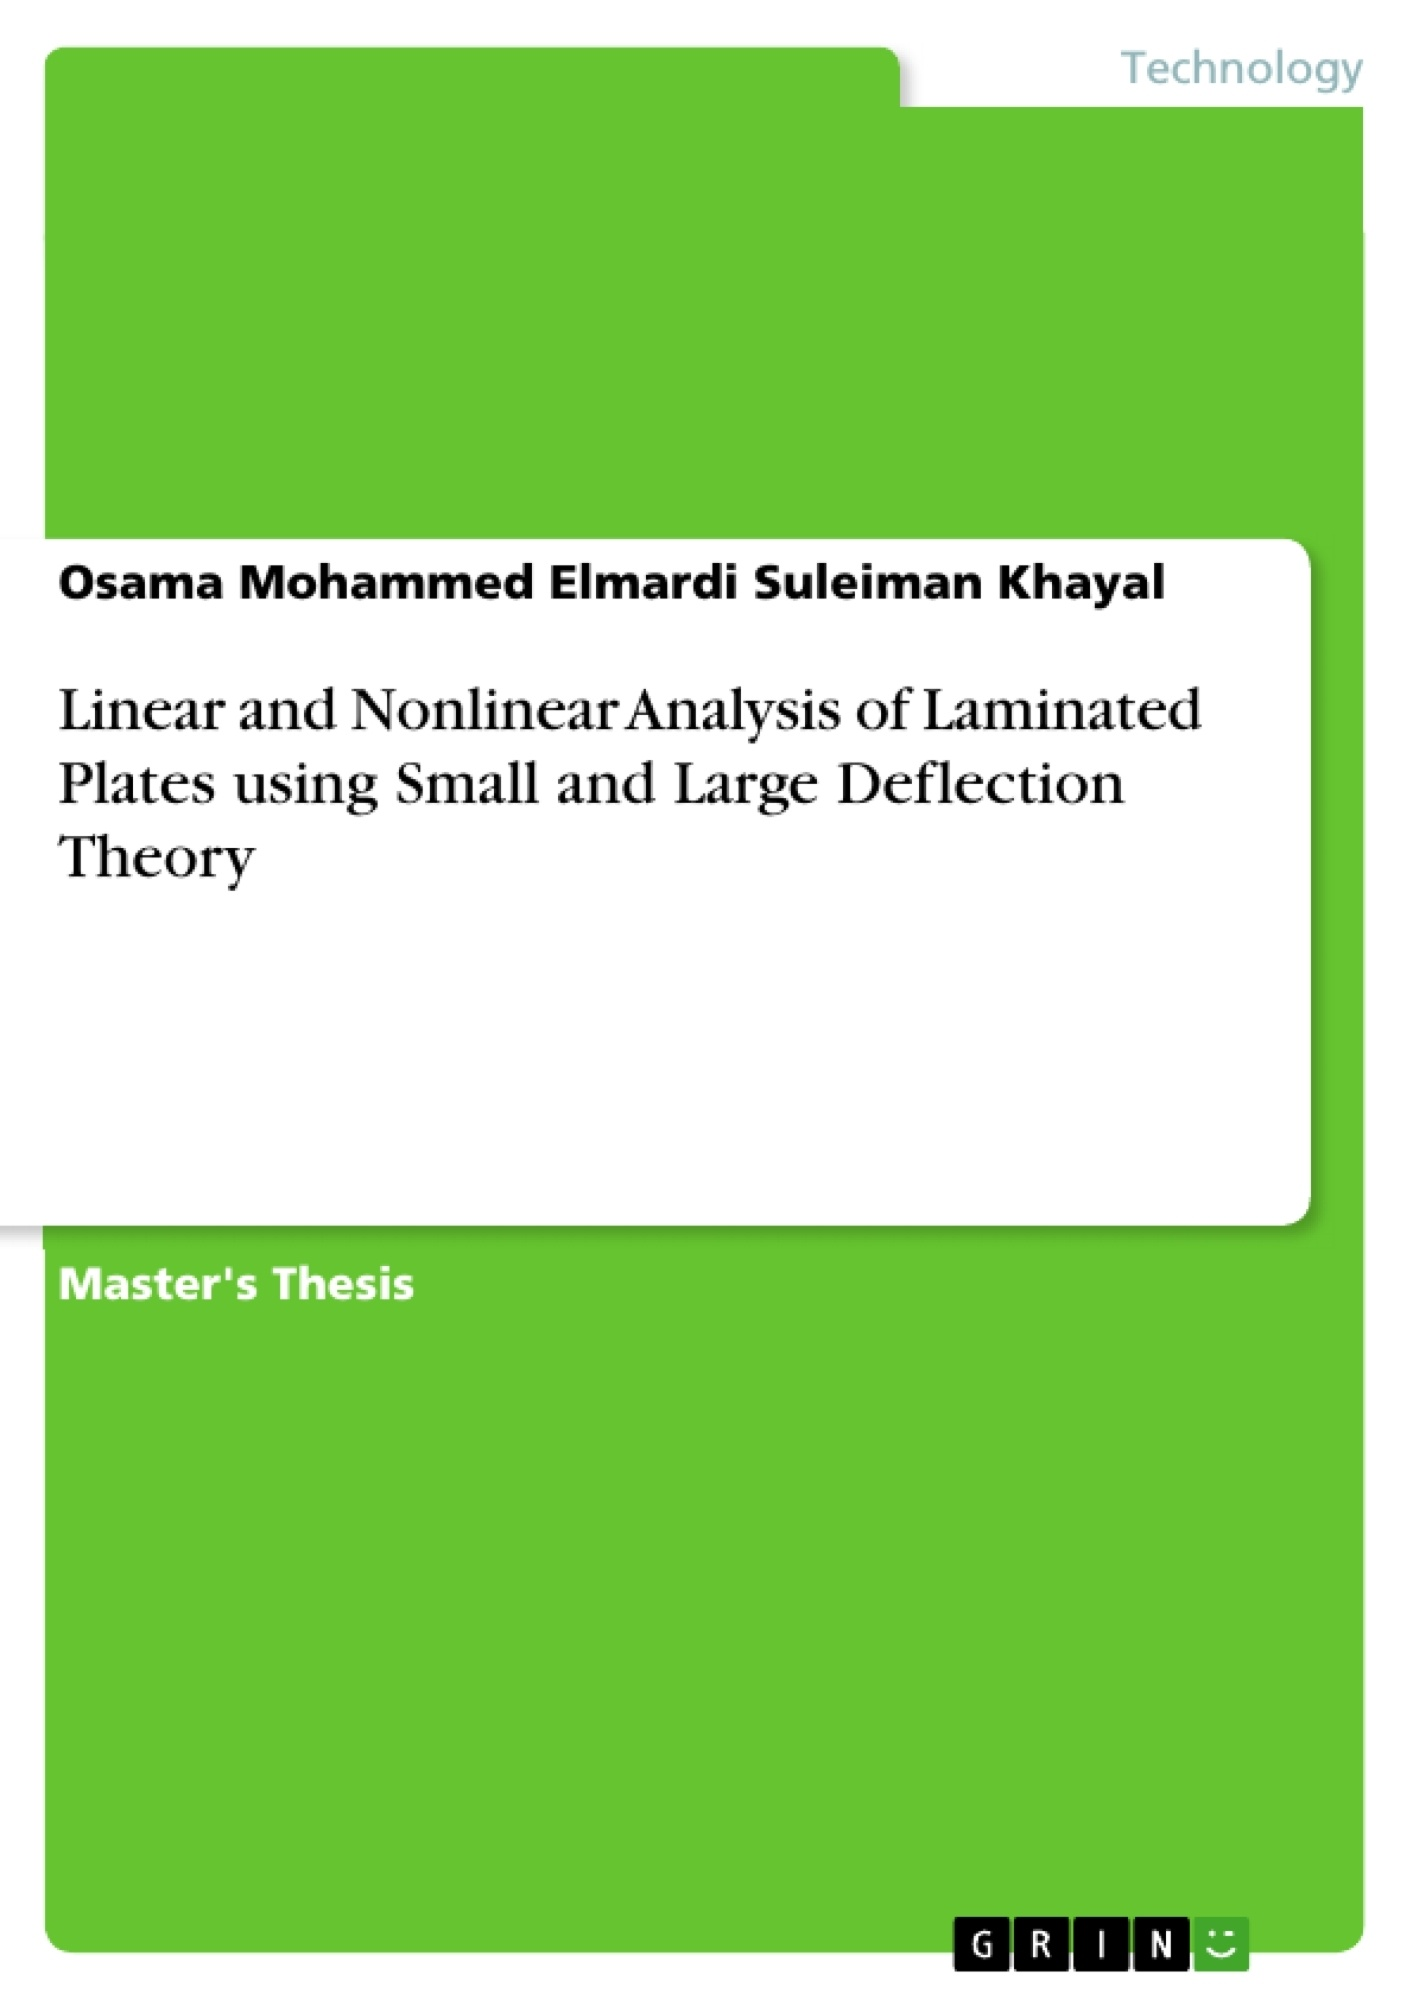 Title: Linear and Nonlinear Analysis of Laminated Plates using Small and Large Deflection Theory